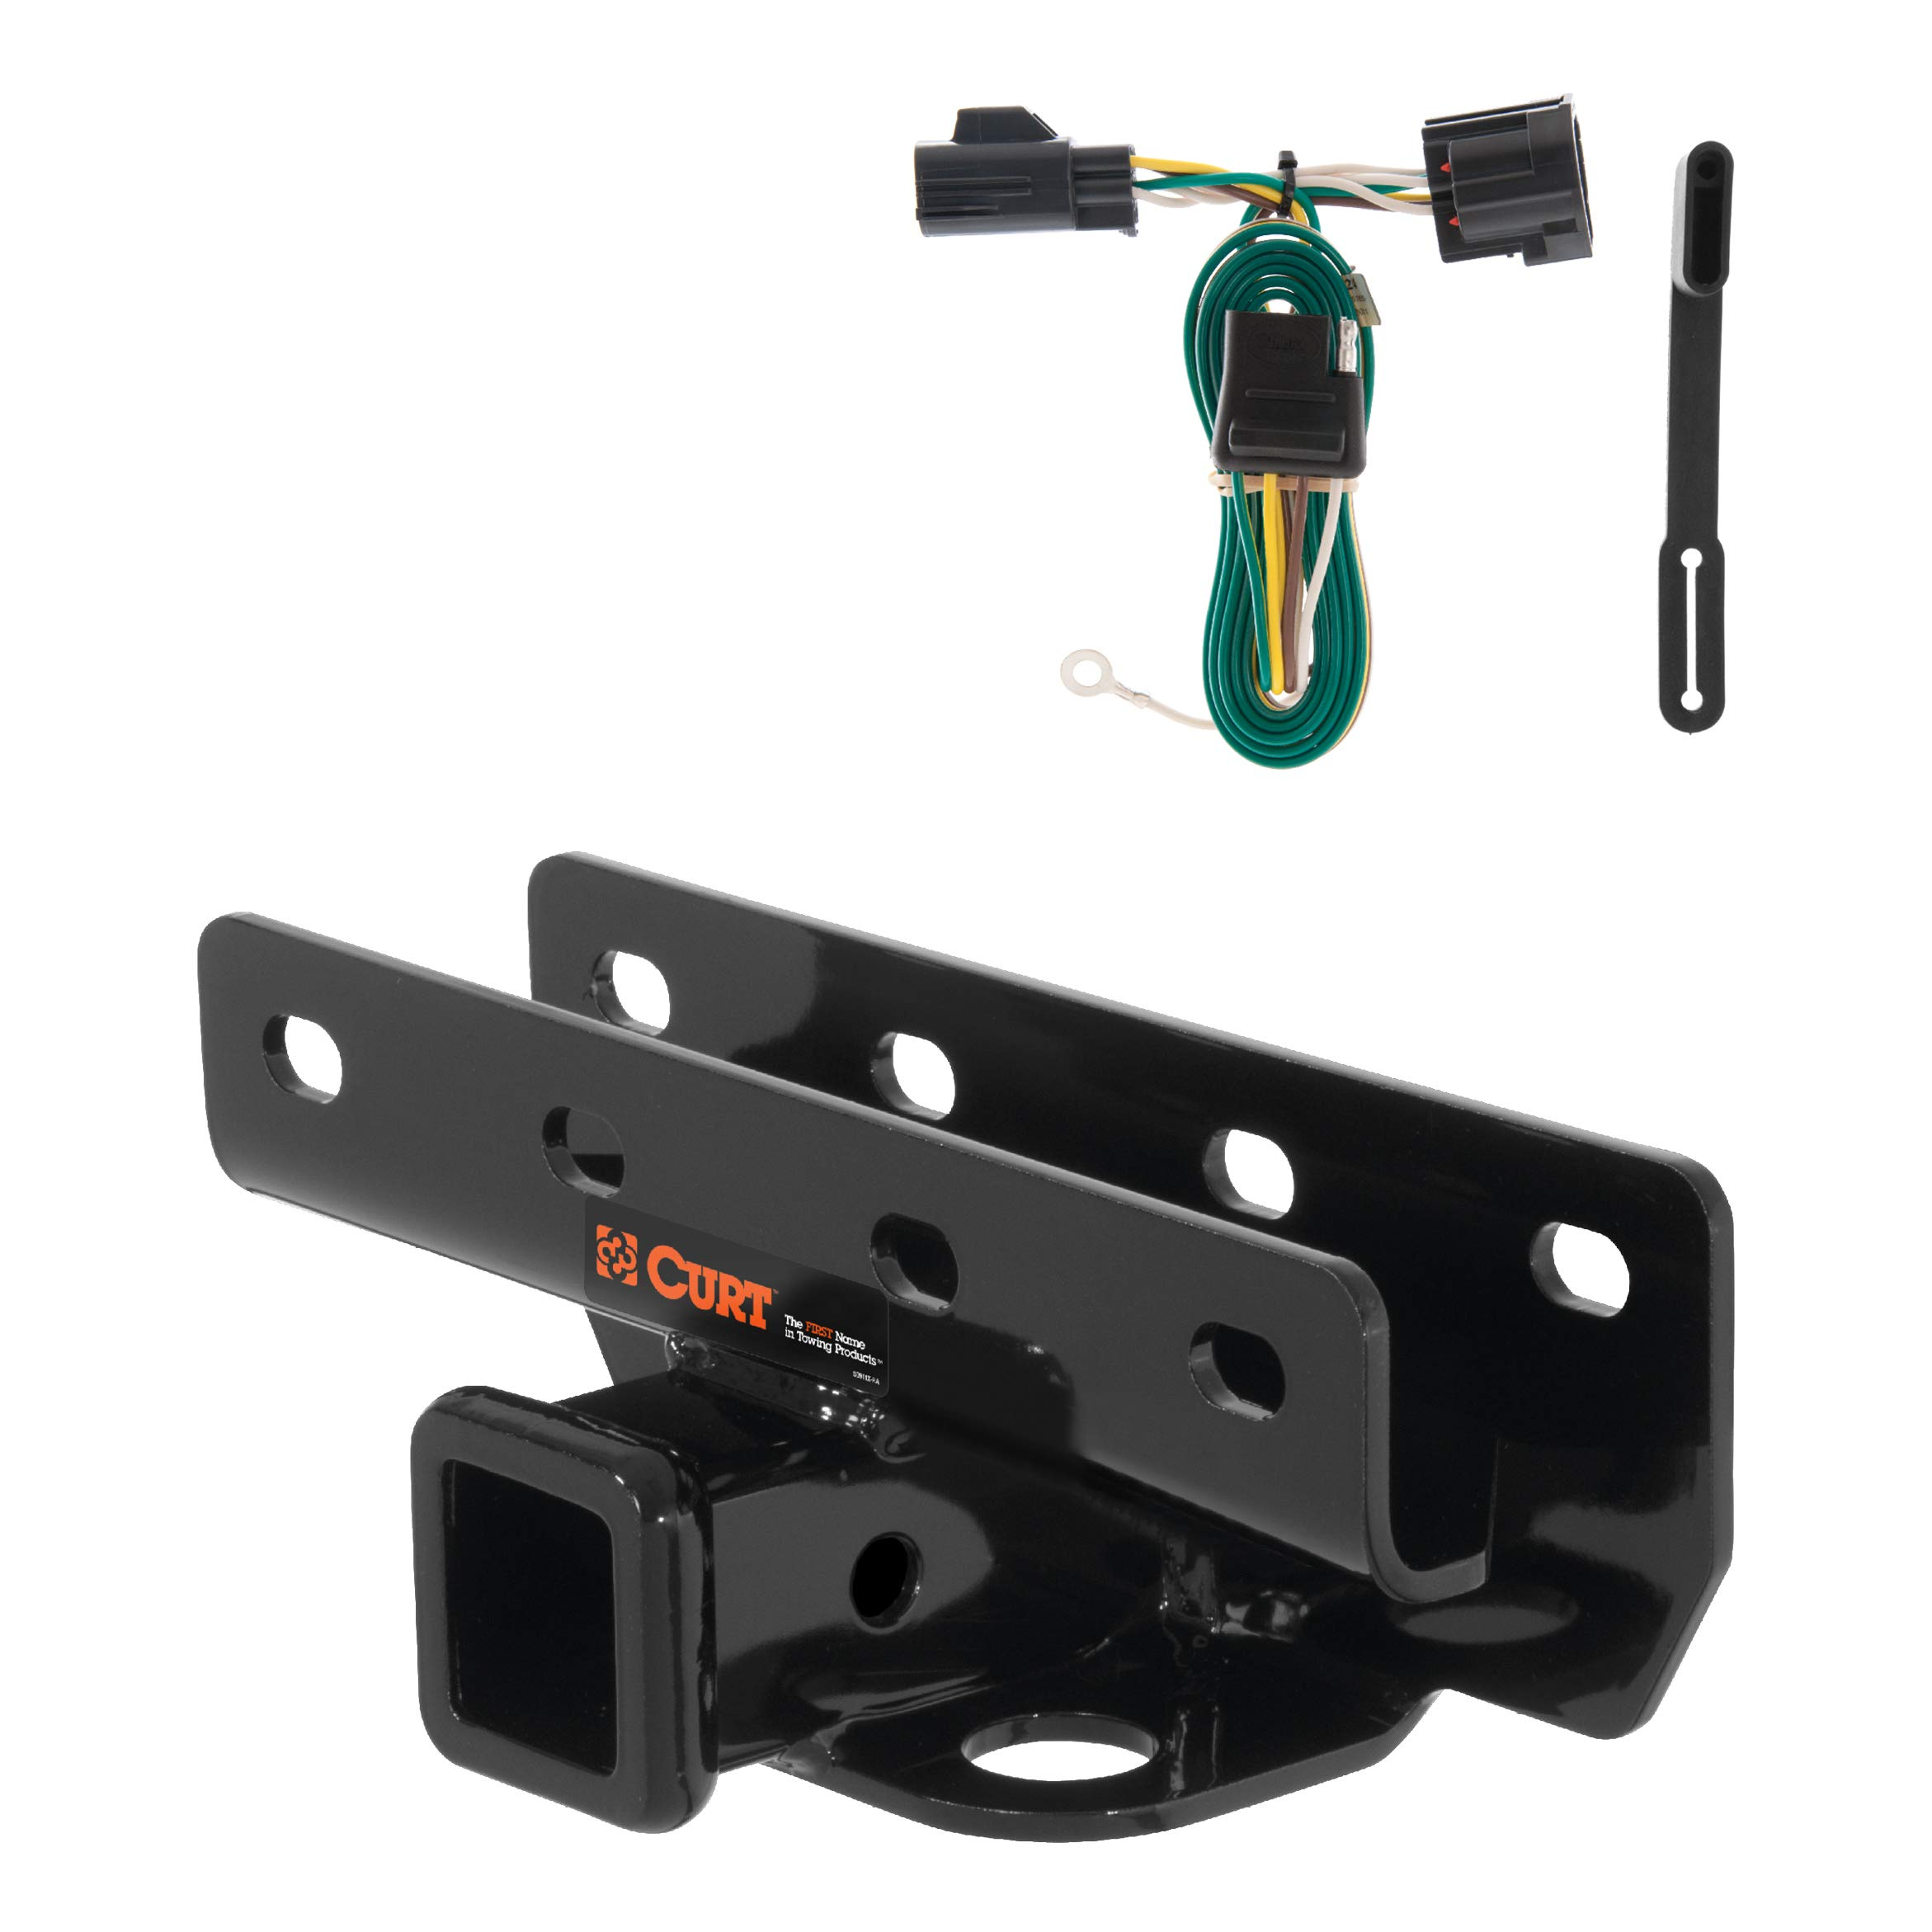 CURT 99317 Class 3 Trailer Hitch, 2-Inch Receiver, 4-Pin Wiring Harness Select Jeep Wrangler by CURT